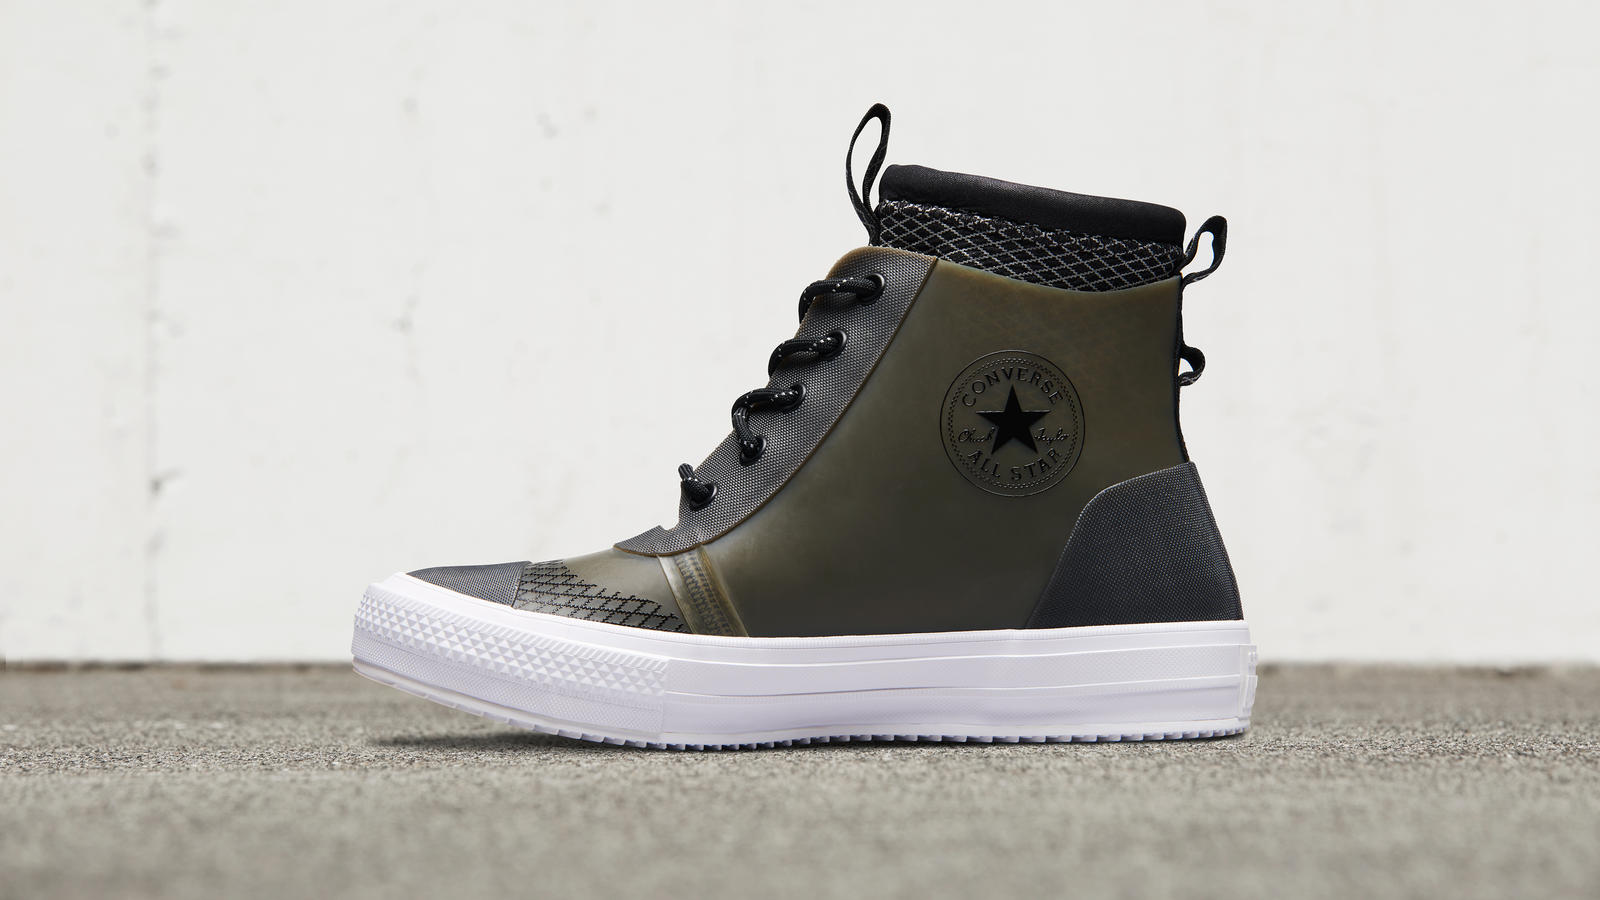 72cdb83a1ee5 Converse Chuck II Waterproof Thermo Boot - Nike News